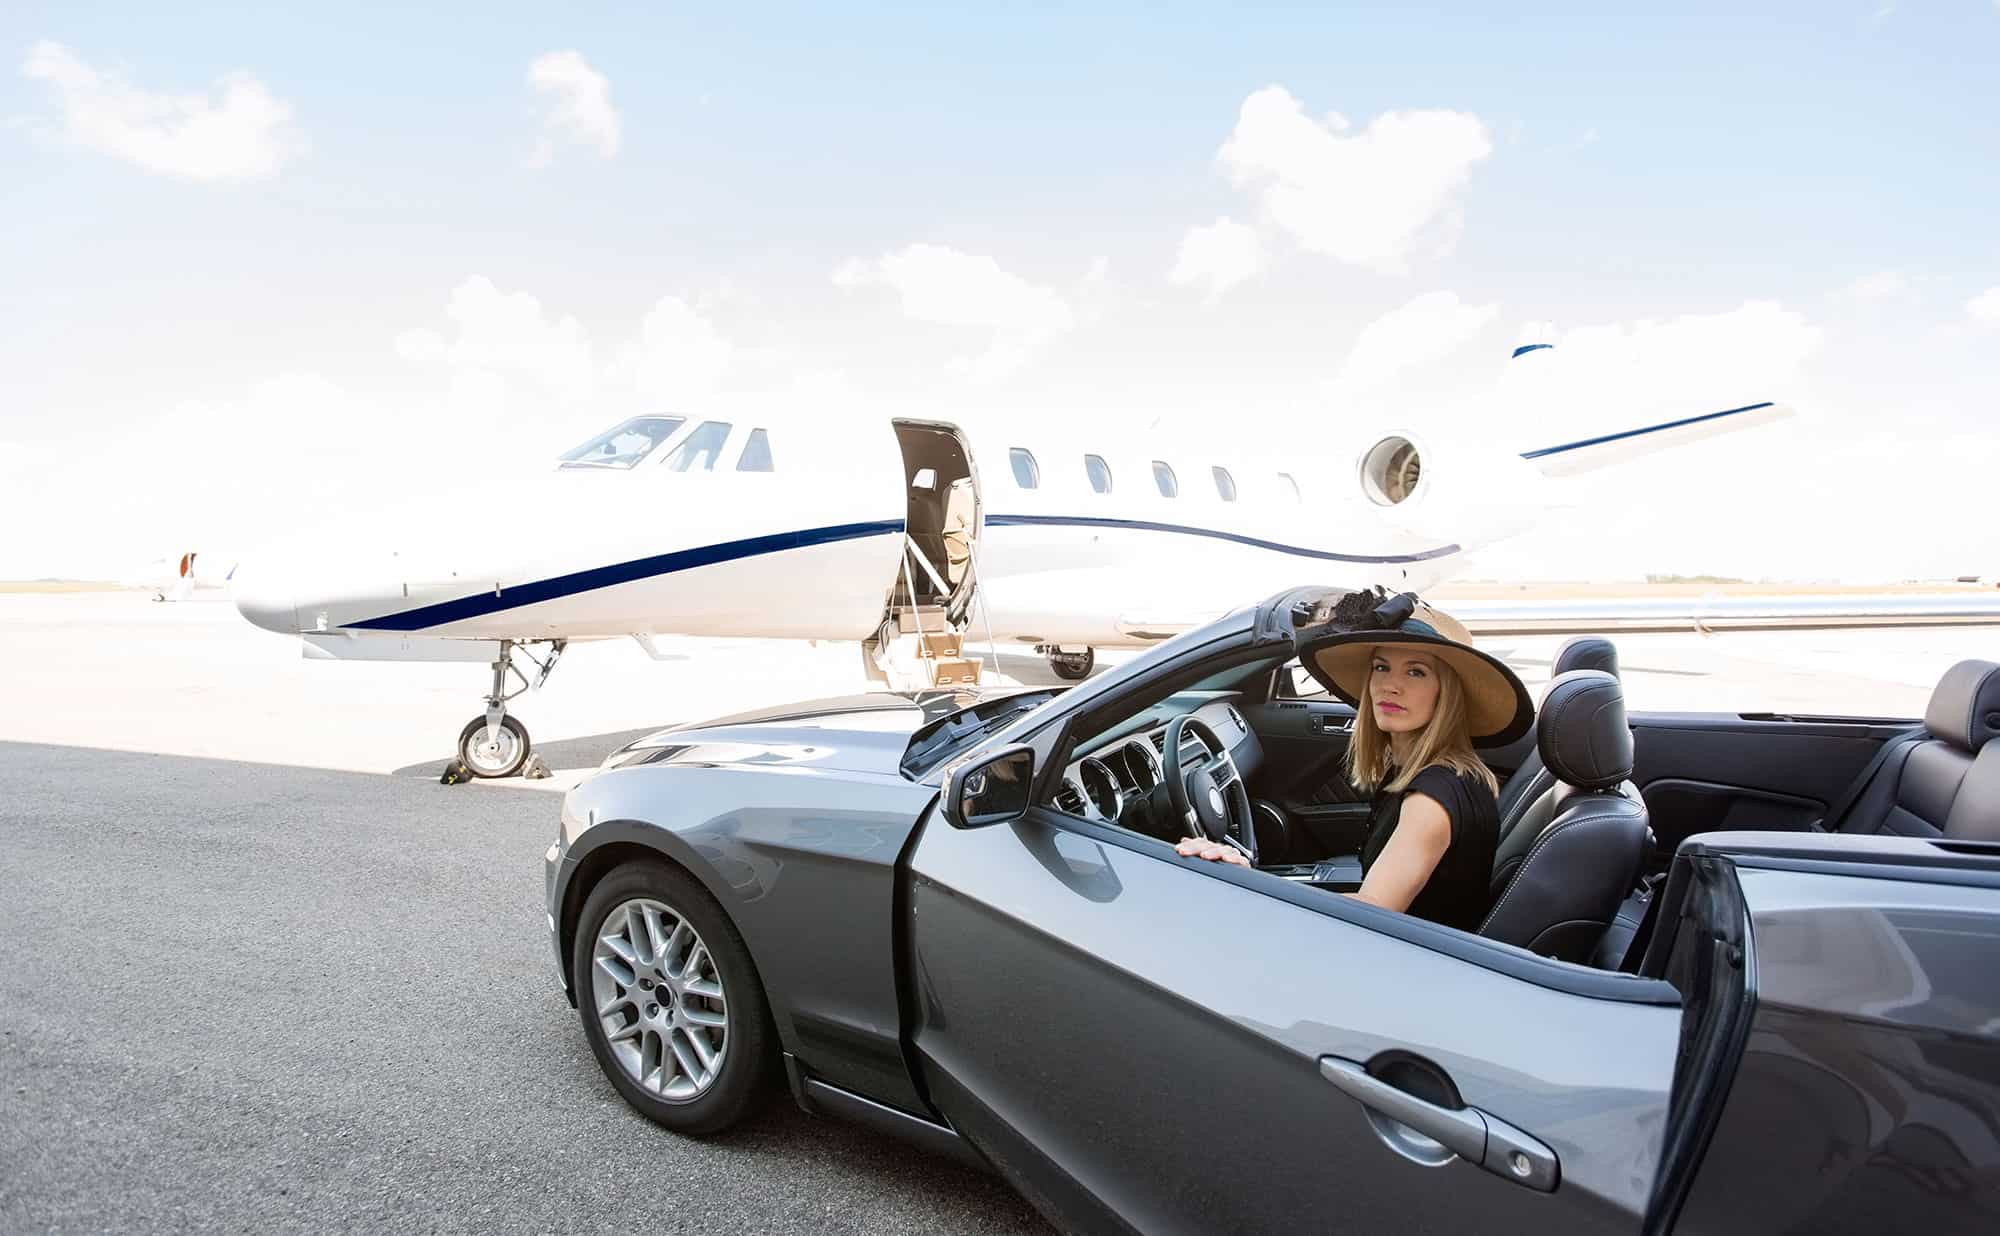 Passenger arriving in car to board jet via ramp access